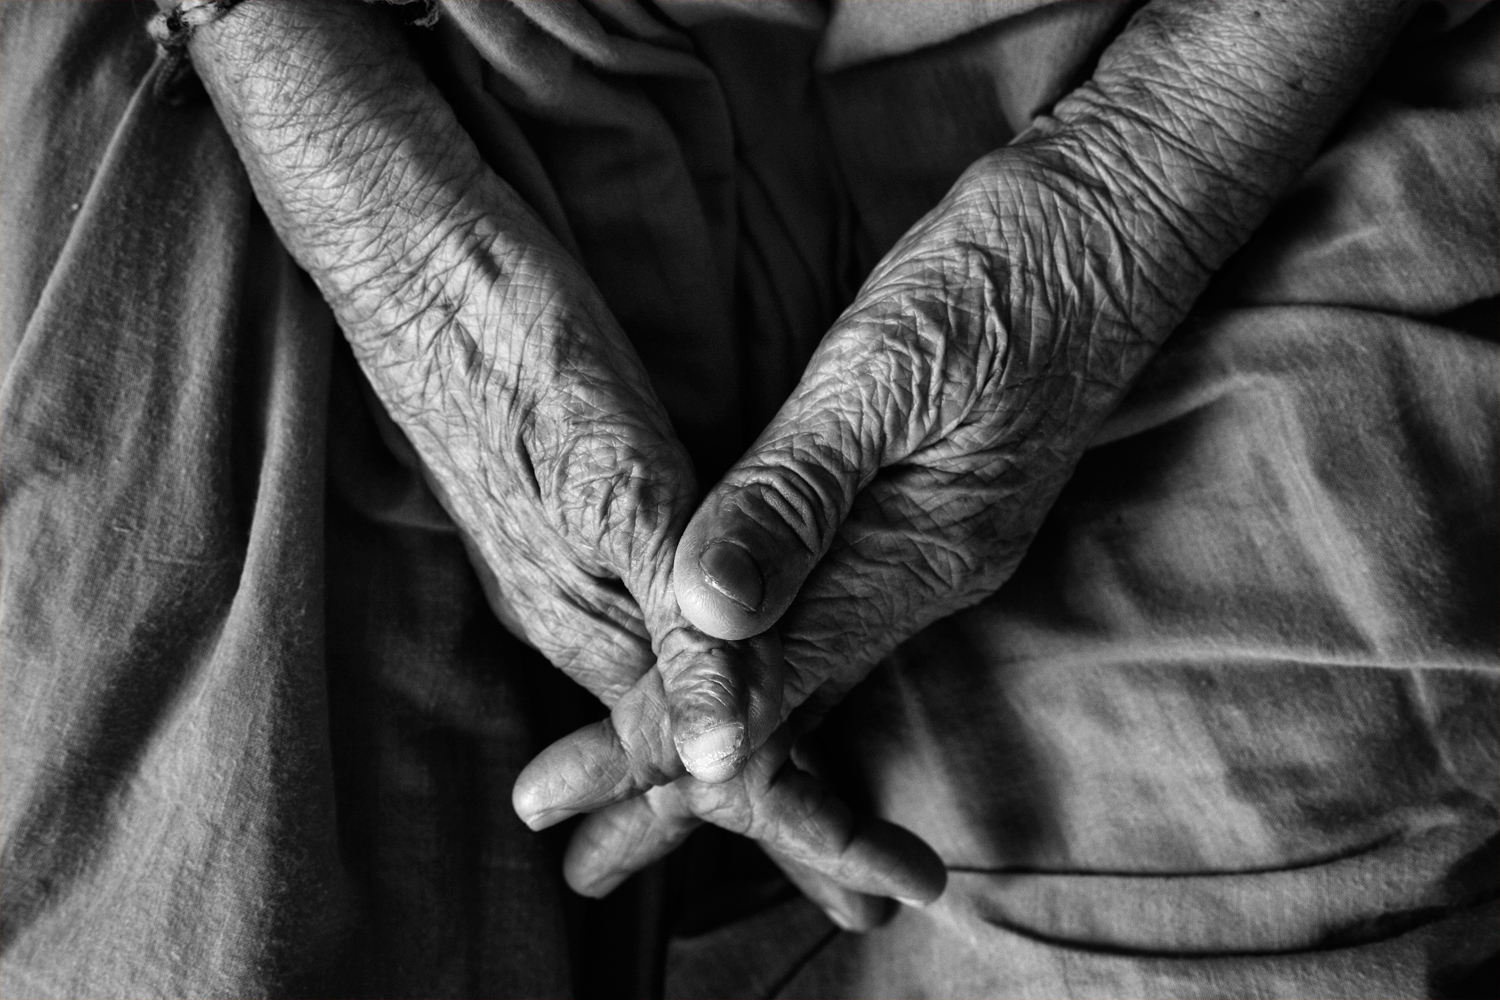 caring for elderly parents at home - old person's hands